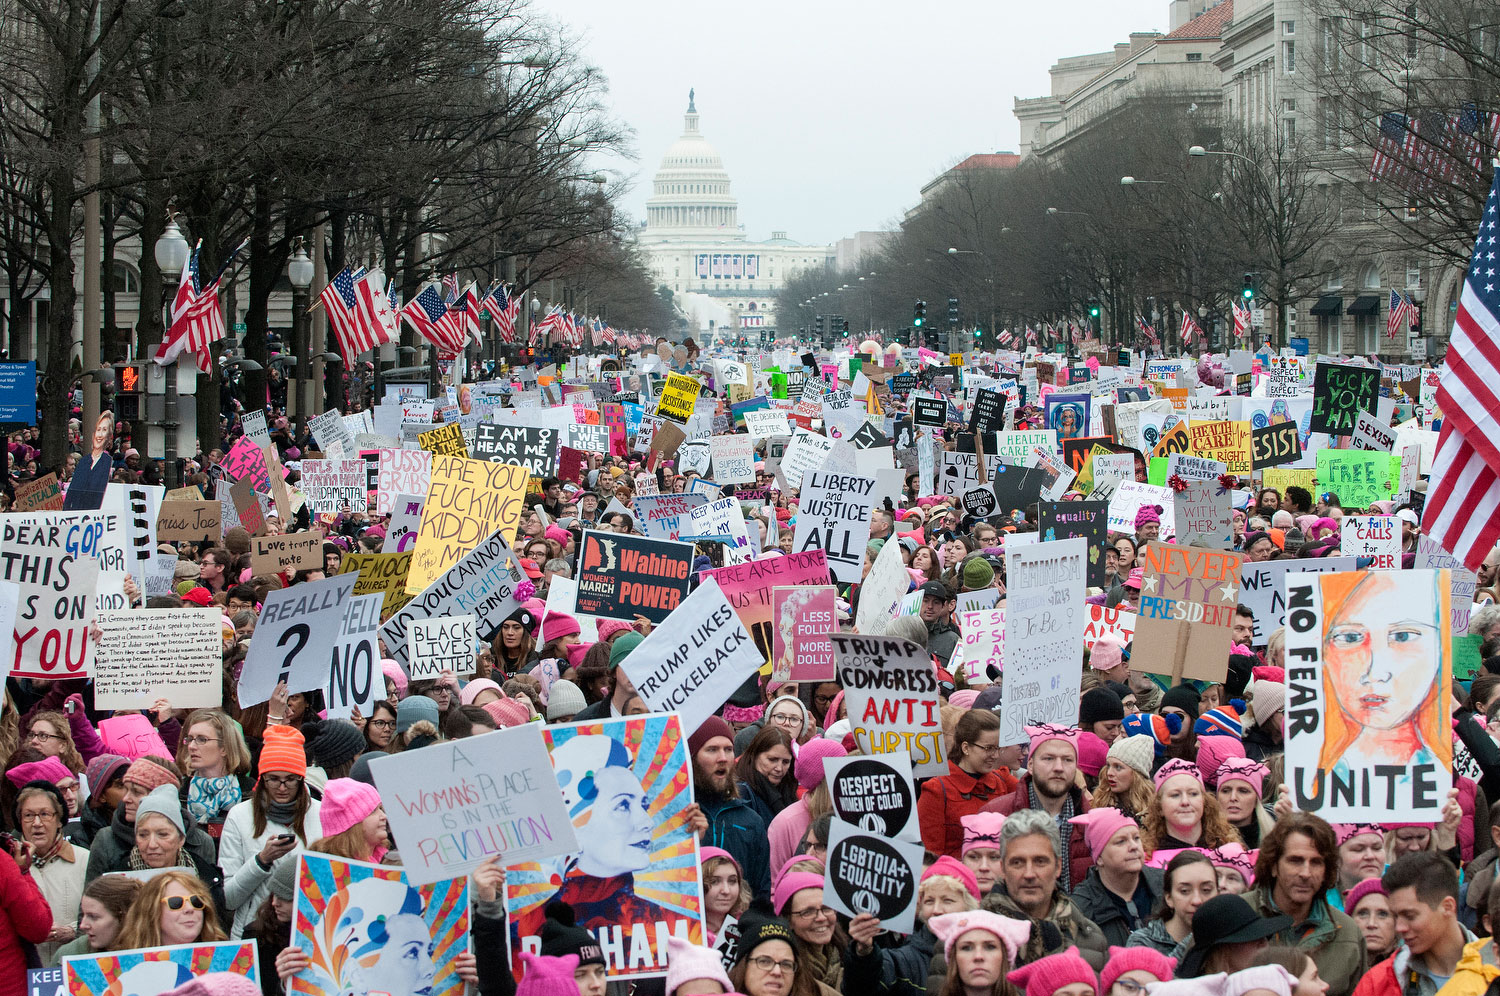 The Women's March, Washington, D.C., January 21, 2017